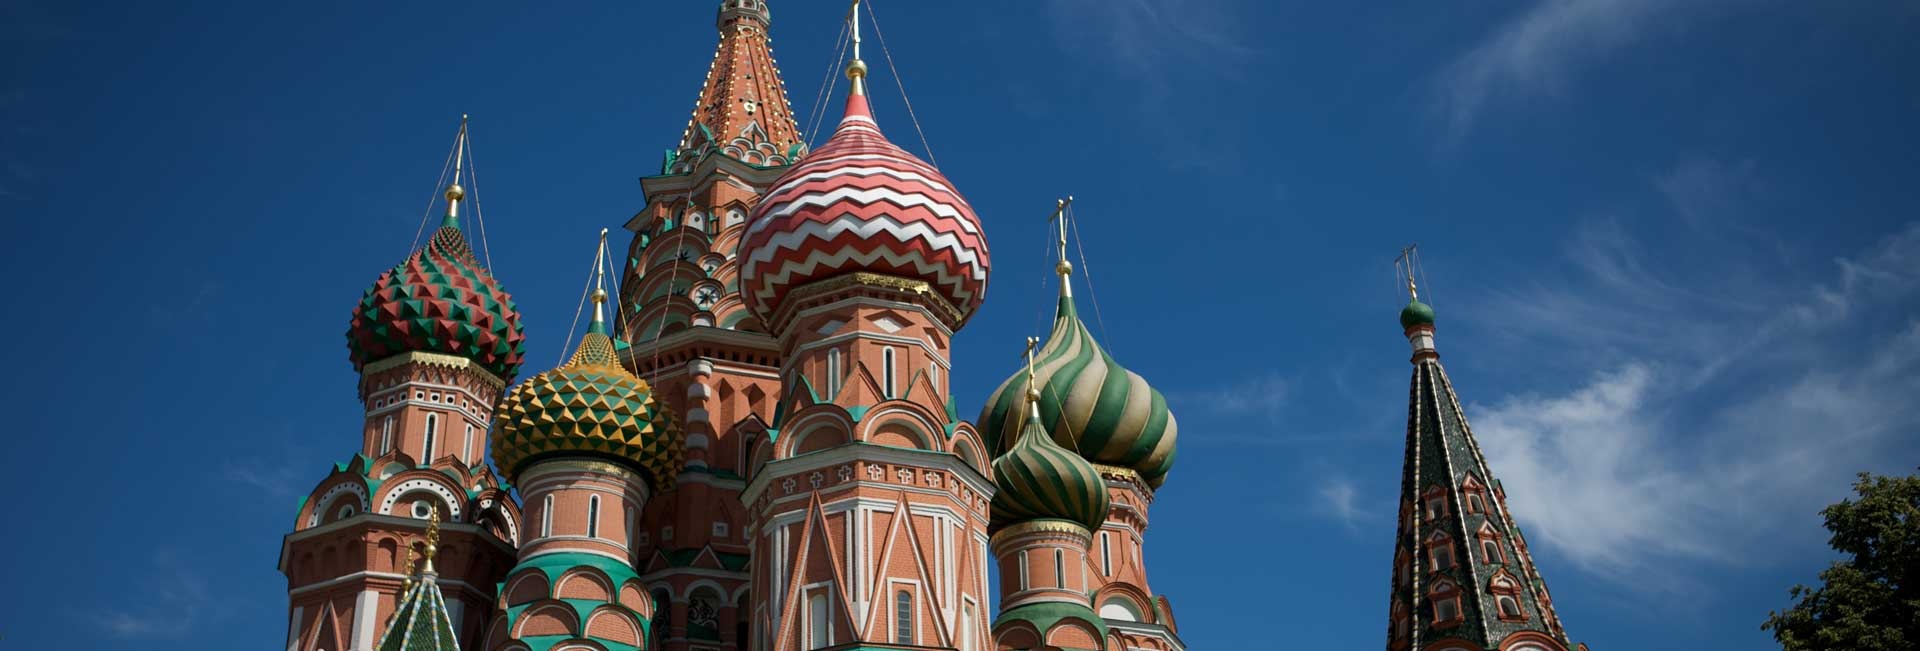 Moscow's iconic St. Basil's Cathedral. Photo credit: Heldge Pedersen